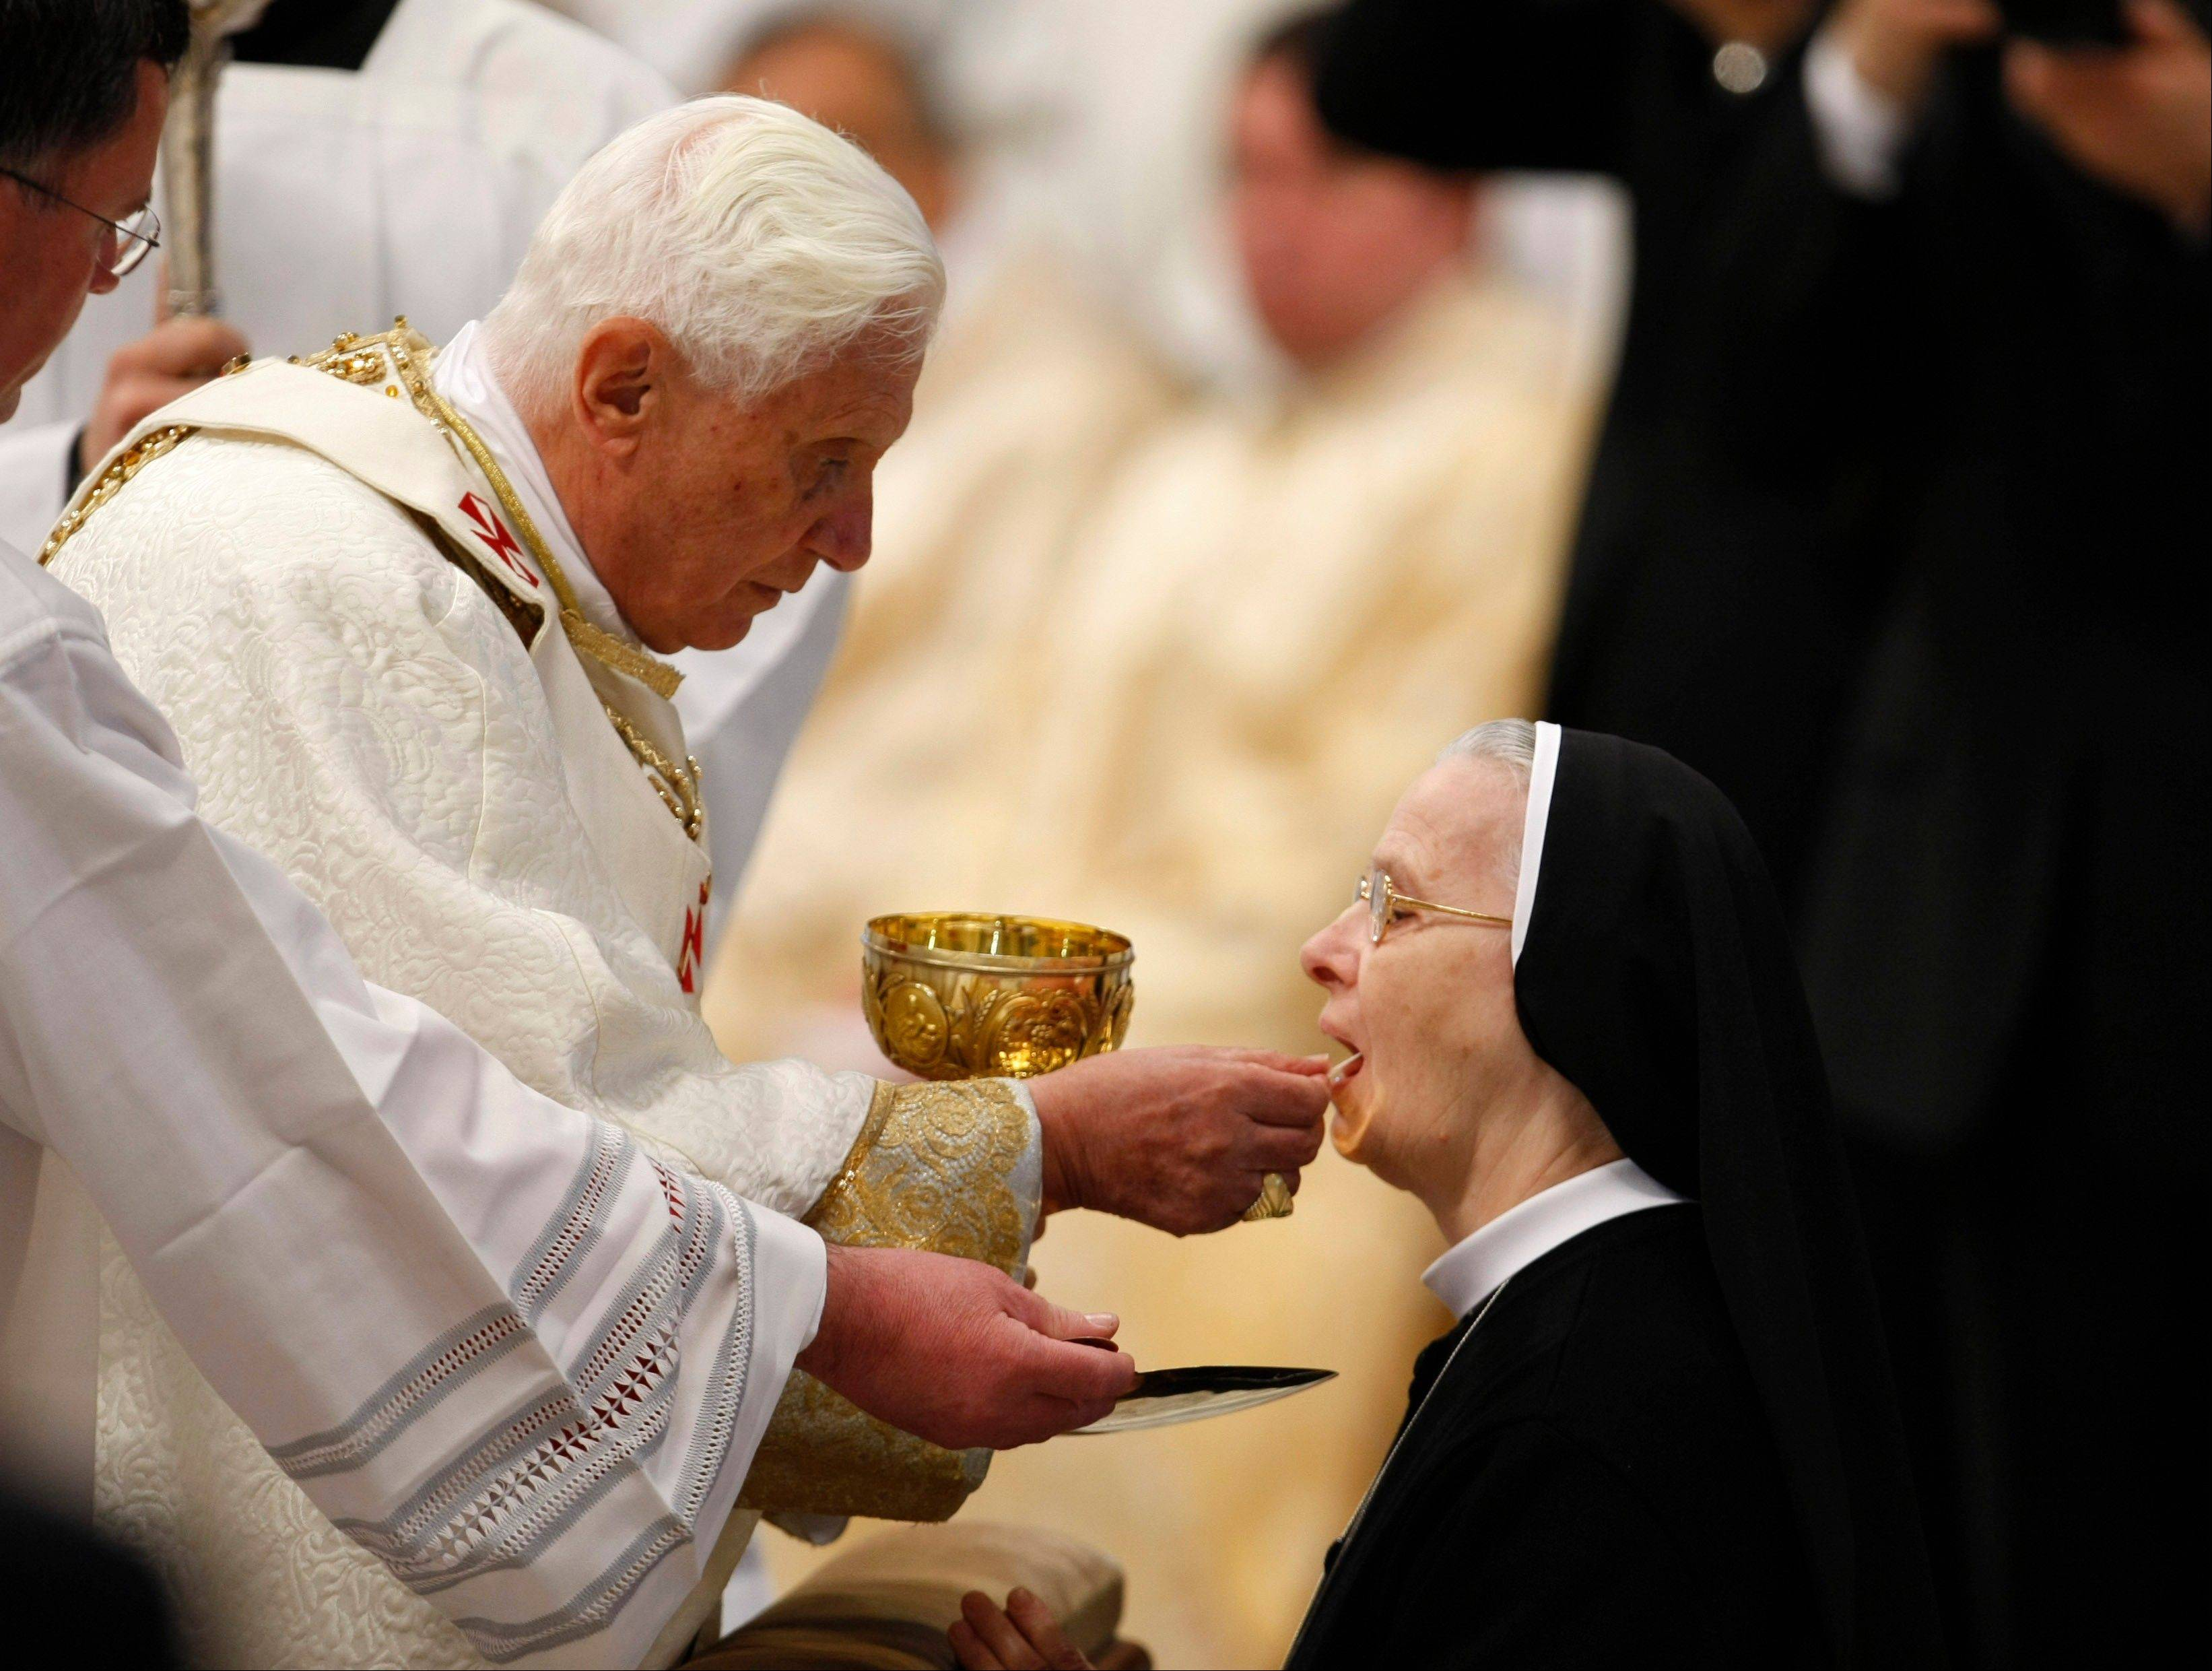 Pope Benedict XVI offers a nun the Holy Communion, a Chrism Mass inside St. Peter's Basilica at the Vatican, as Benedict XVI celebrated a Holy Thursday Mass that included the traditional blessing of holy oils -- some of which the church will send to an earthquake zone as a sign of closeness to the stricken population.